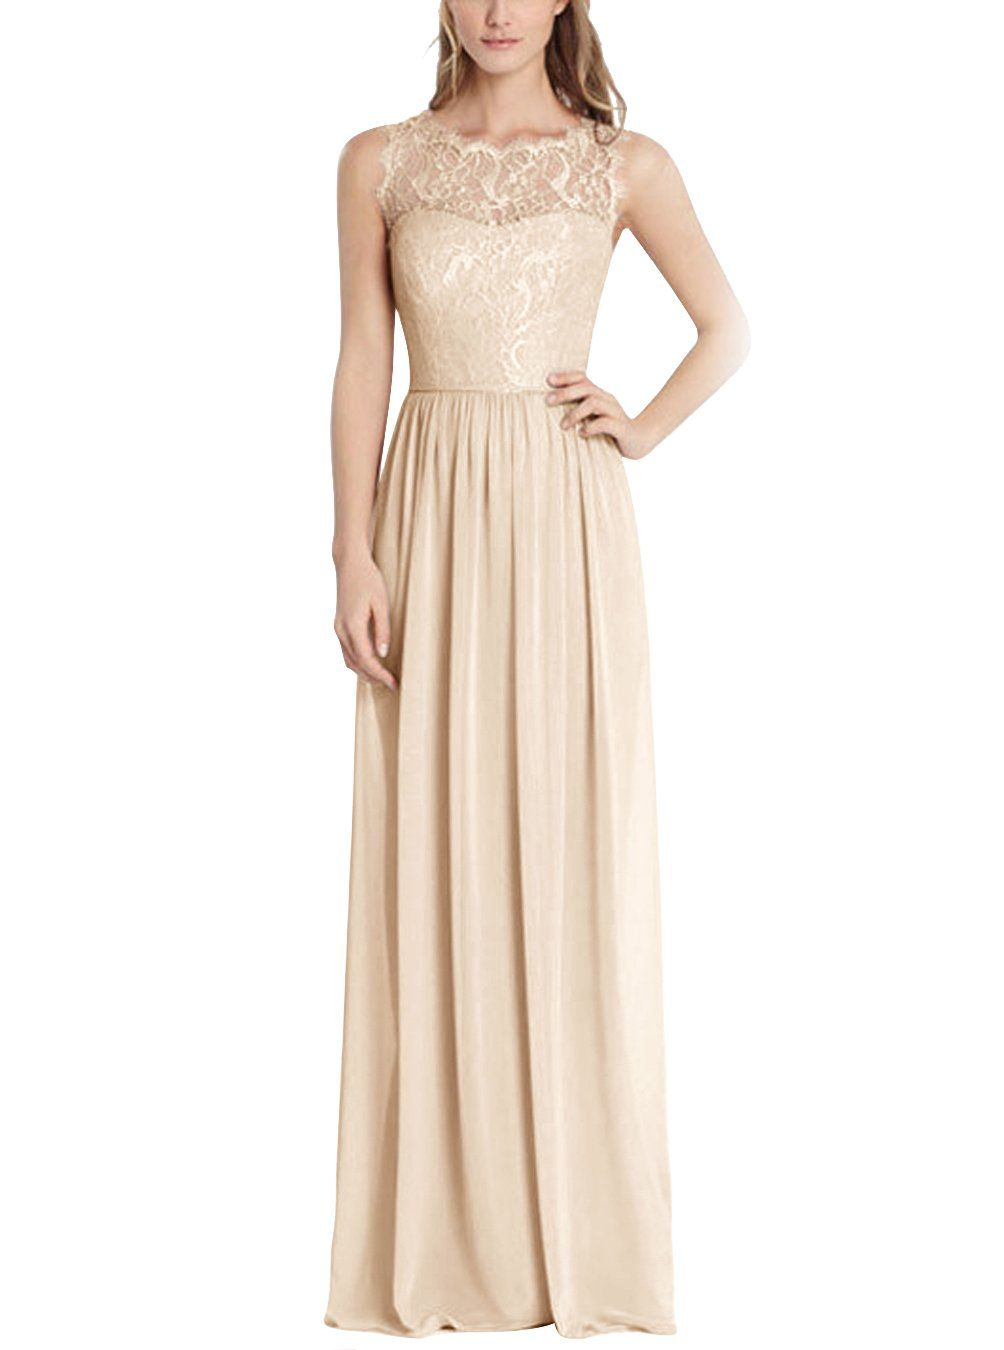 Tideclothes long chiffon bridesmaid dress lace seethrough prom